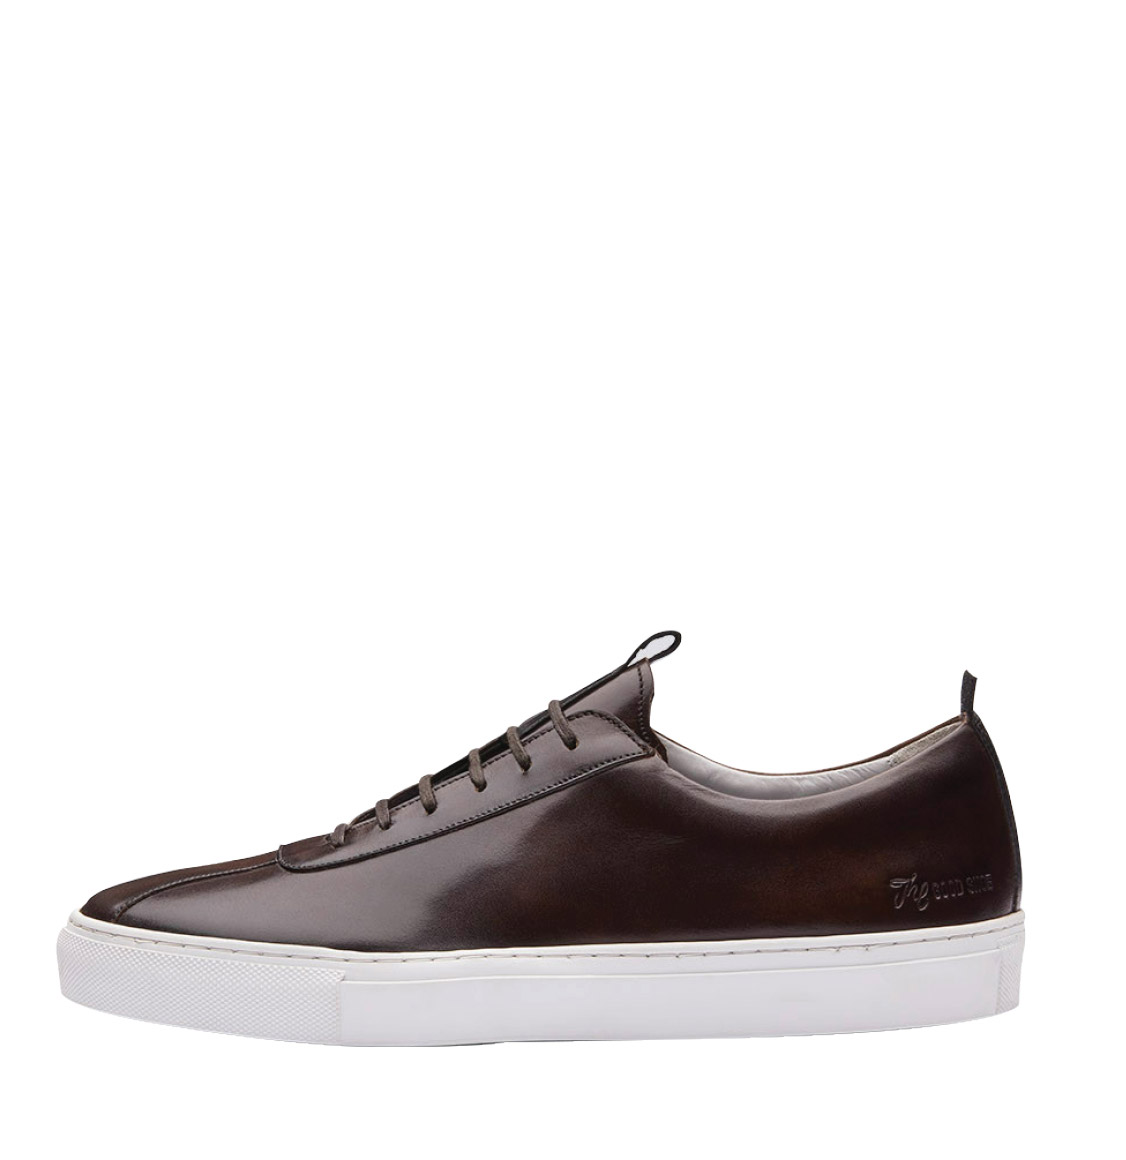 Grenson Brown Leather Oxford Sneaker